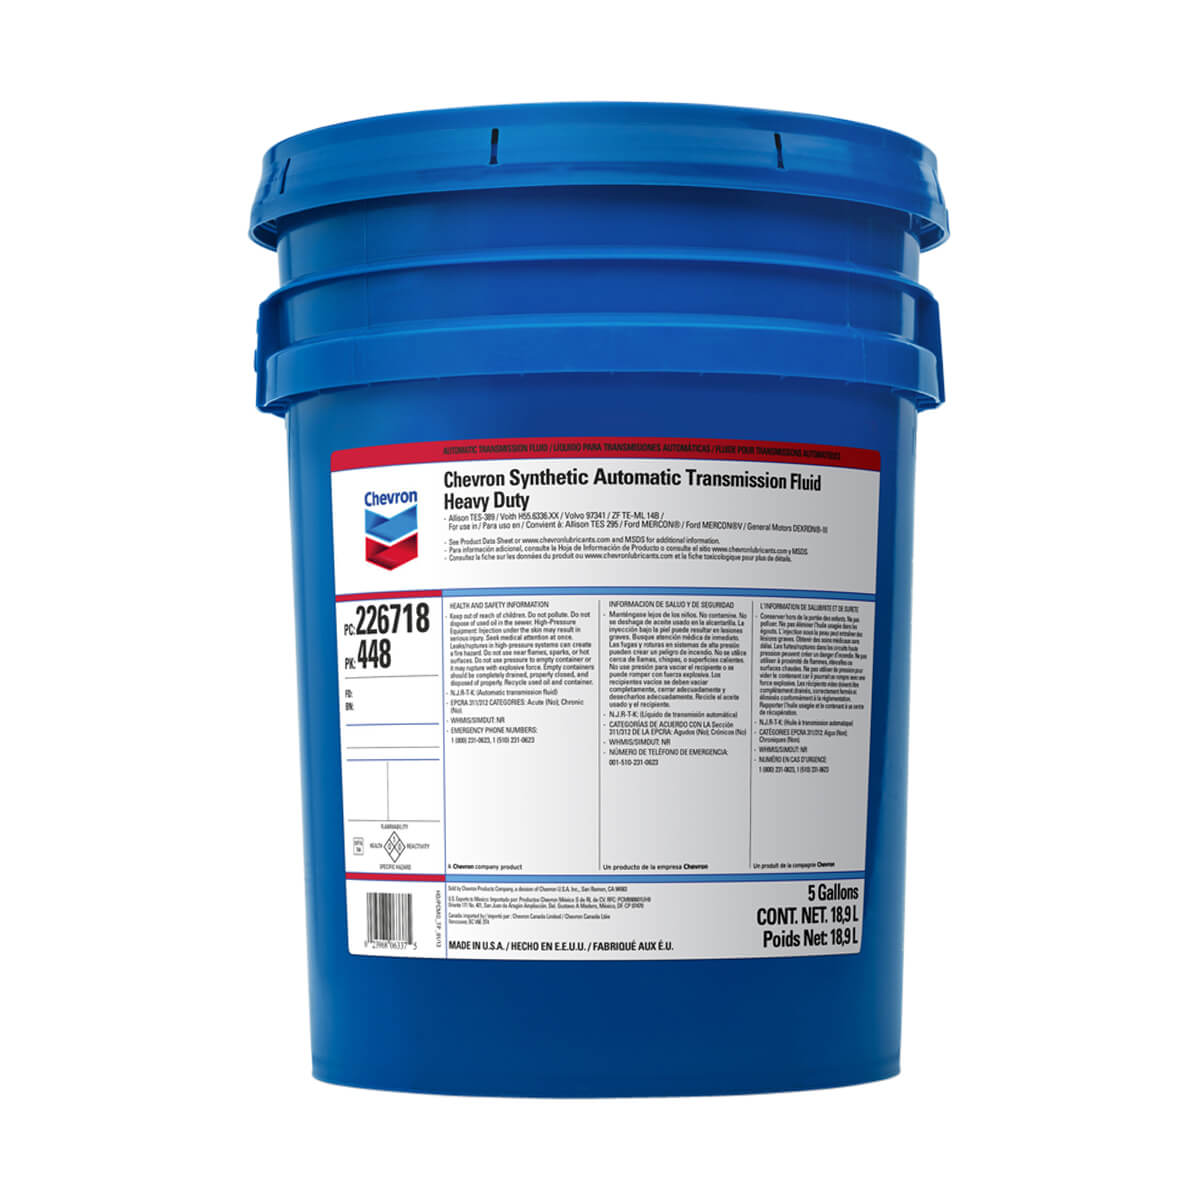 Chevron Synthetic ATF Heavy Duty - 18.9L